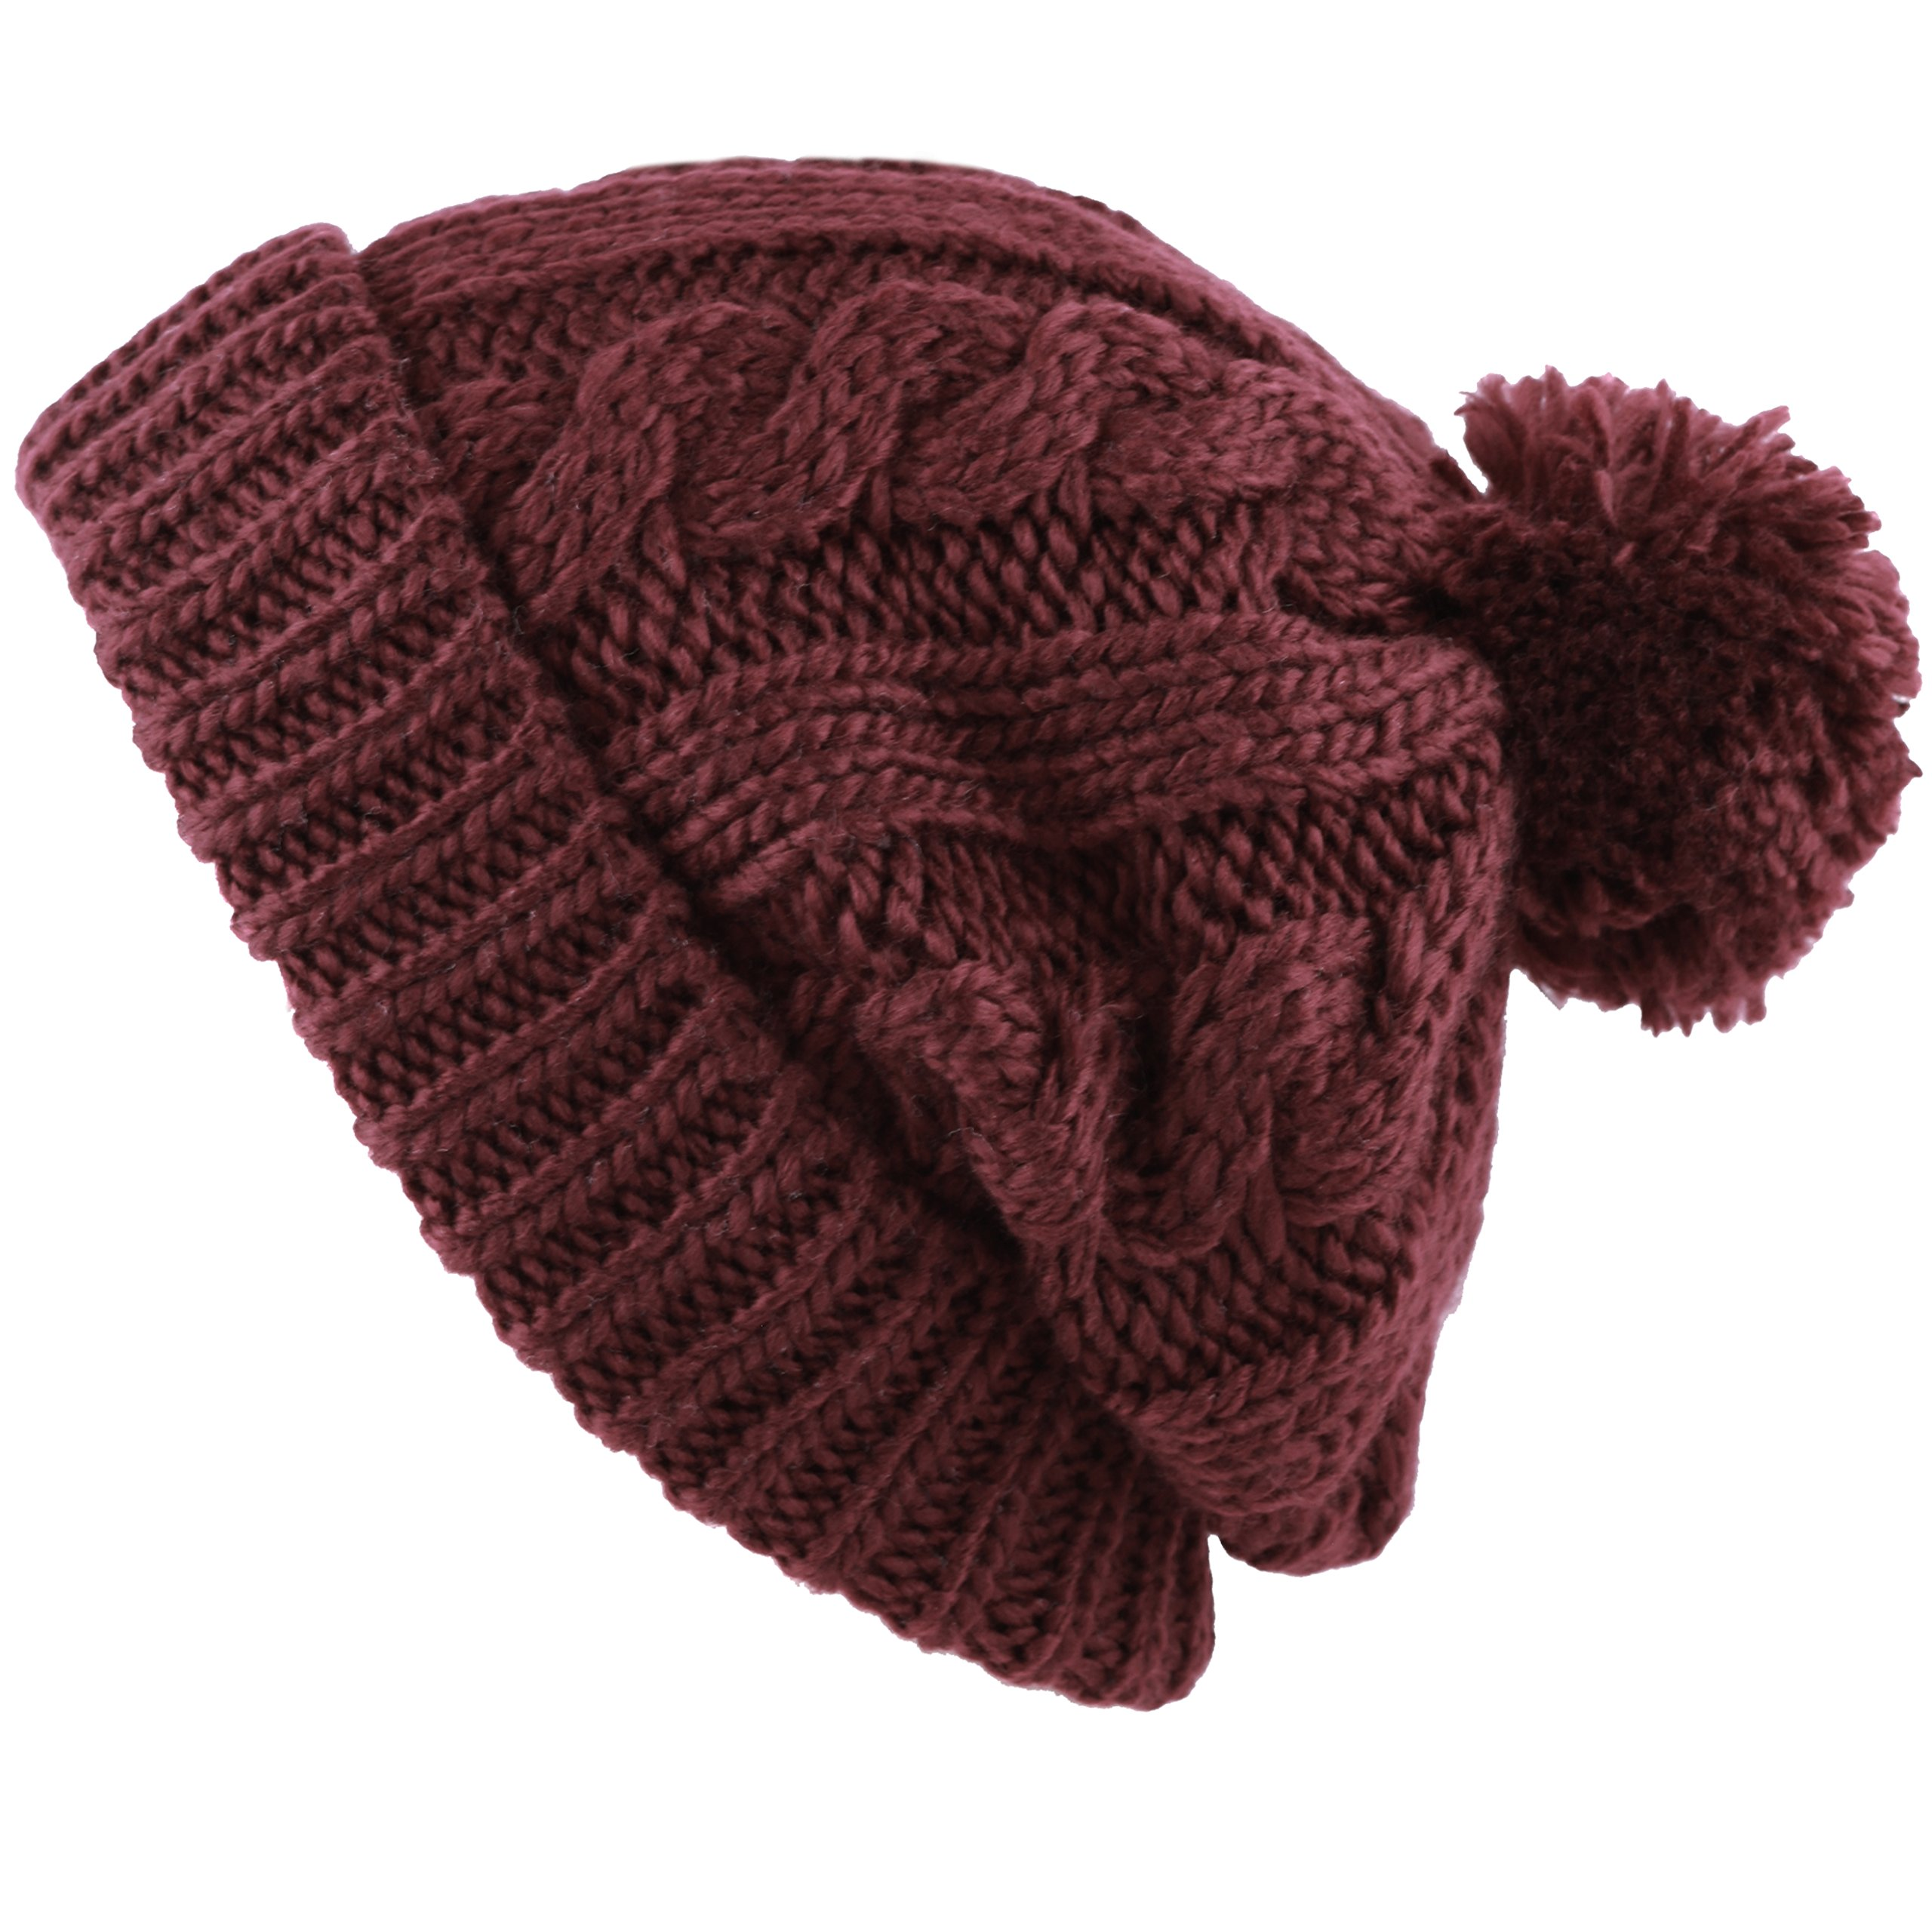 c6d65286c54 THE HAT DEPOT Winter Oversized Cable Knitted Pom Pom Beanie Hat Fleece  Lining Hat product image